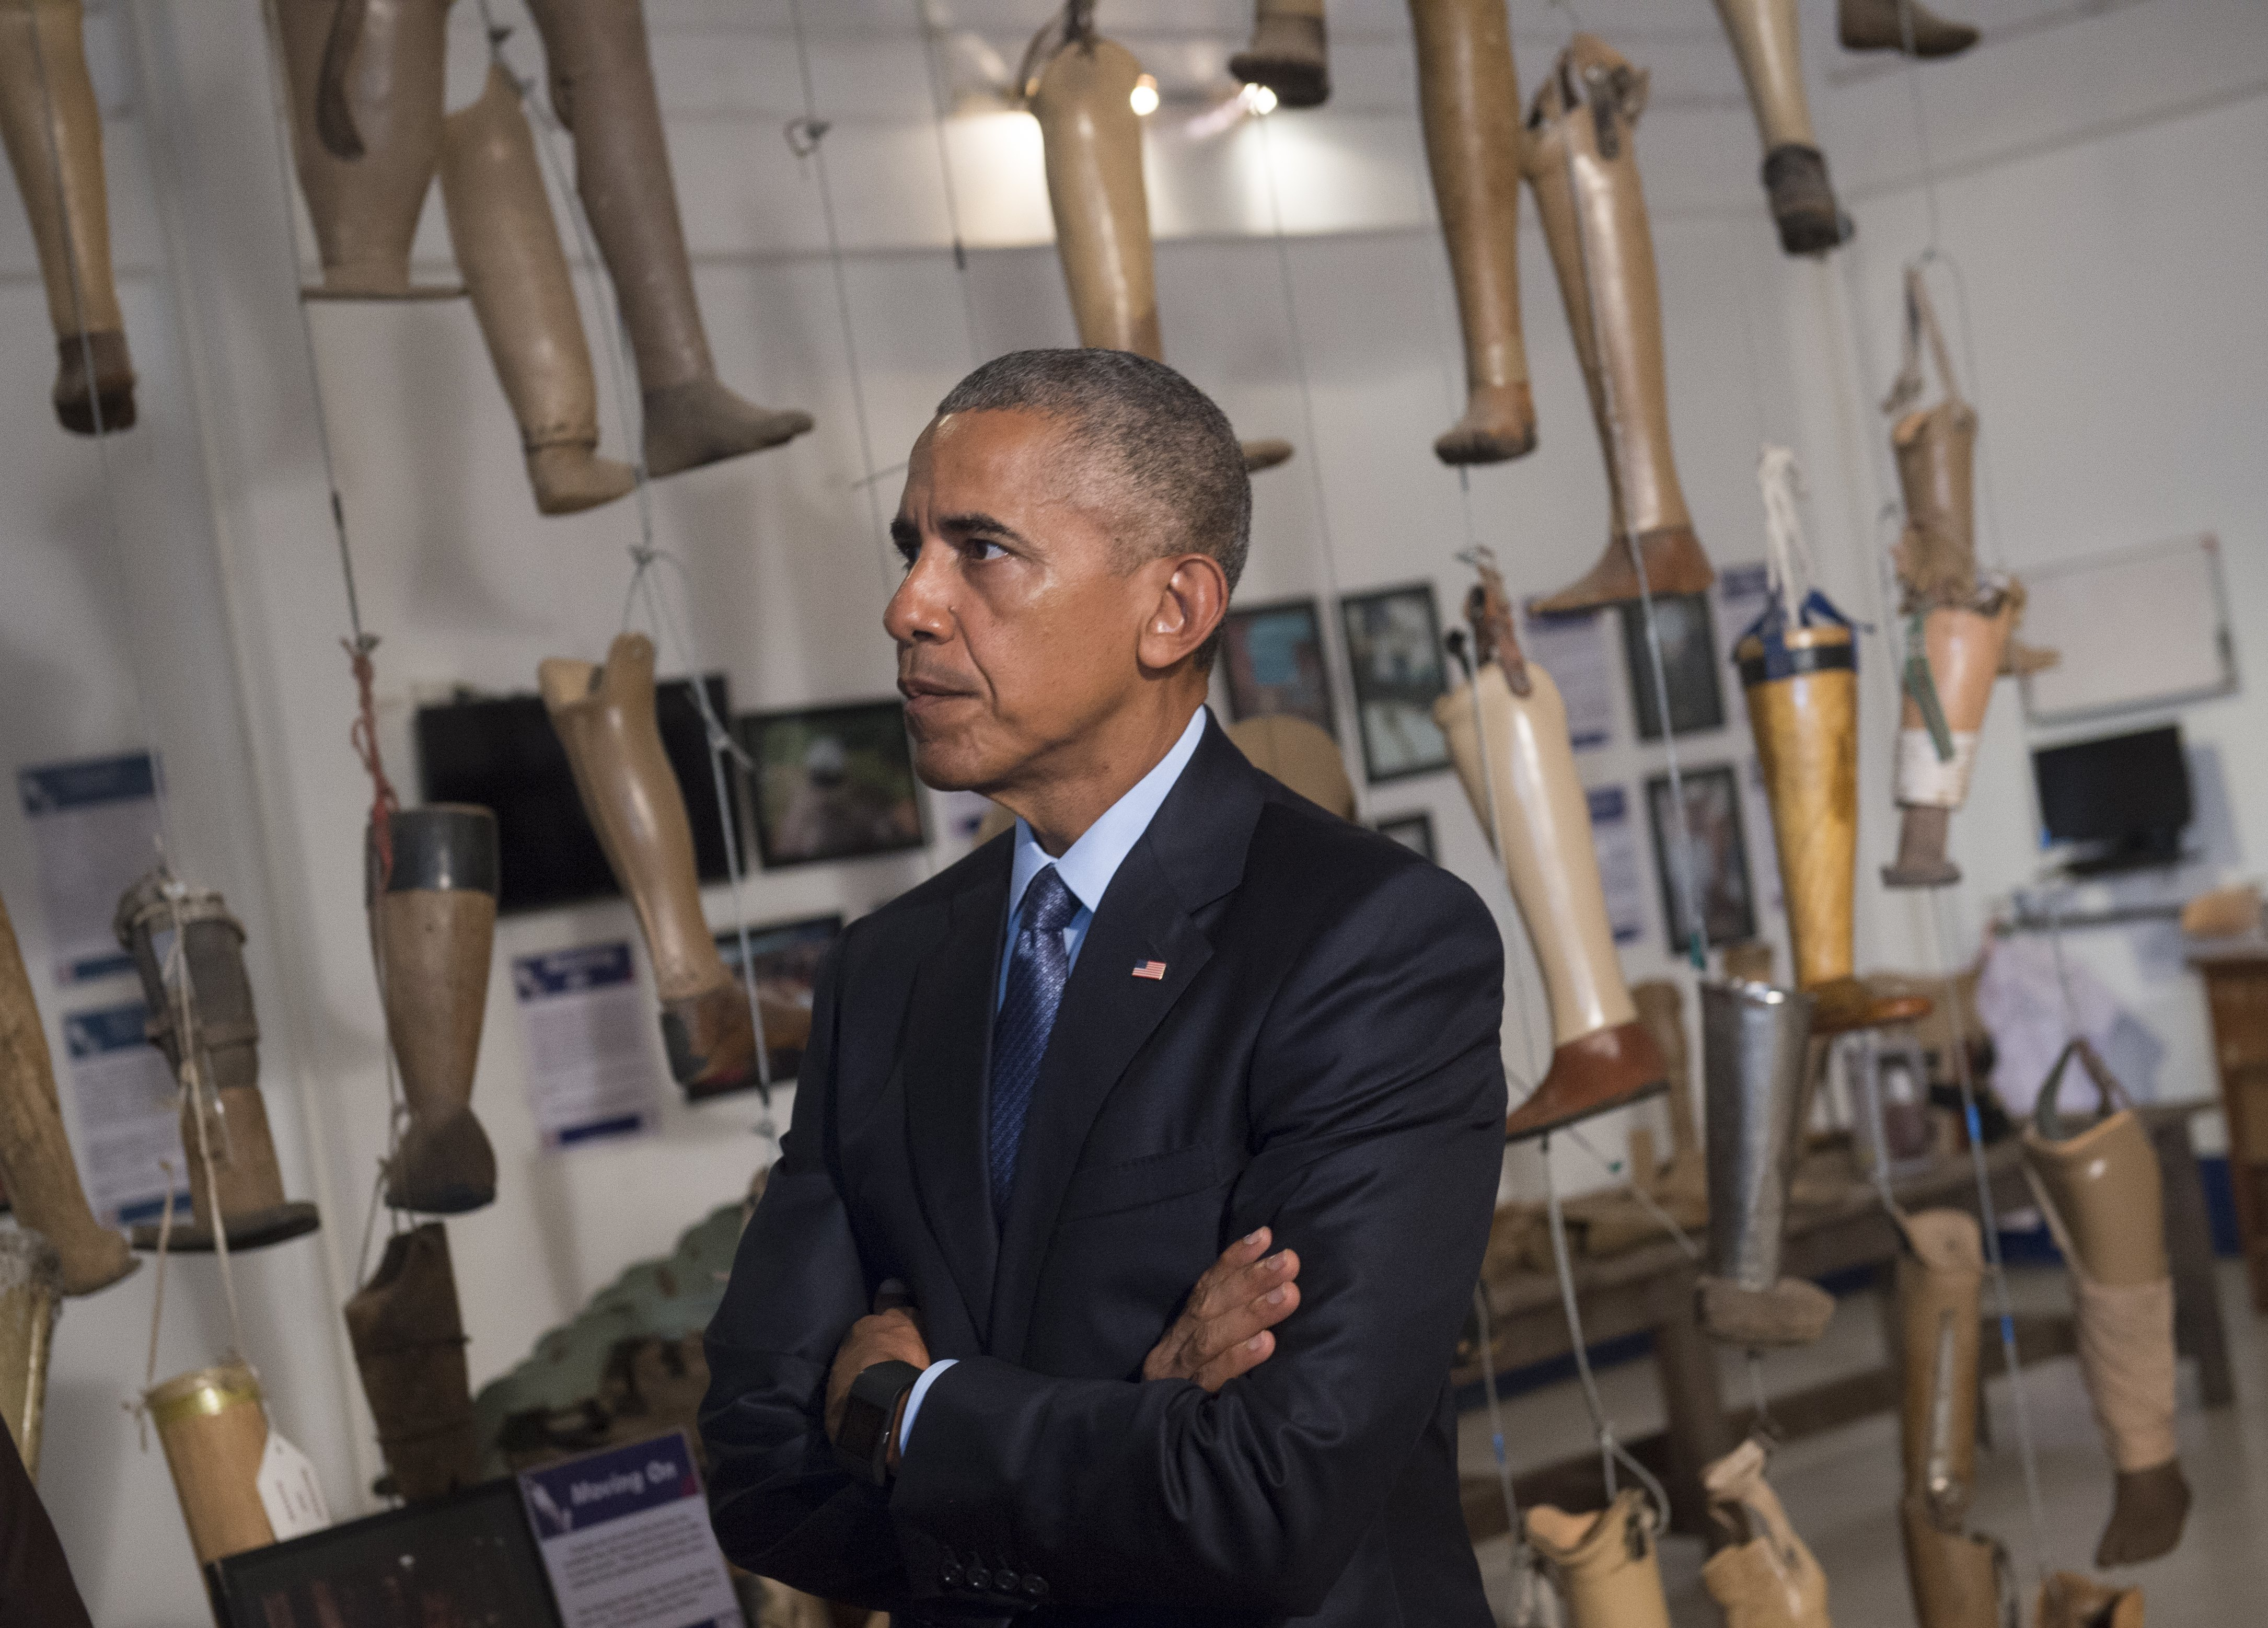 U.S. President Barack Obama tours the Cooperative Orthotic and Prosthetic Enterprise visitor center in Vientiane, Laos, on Sept. 7, 2016